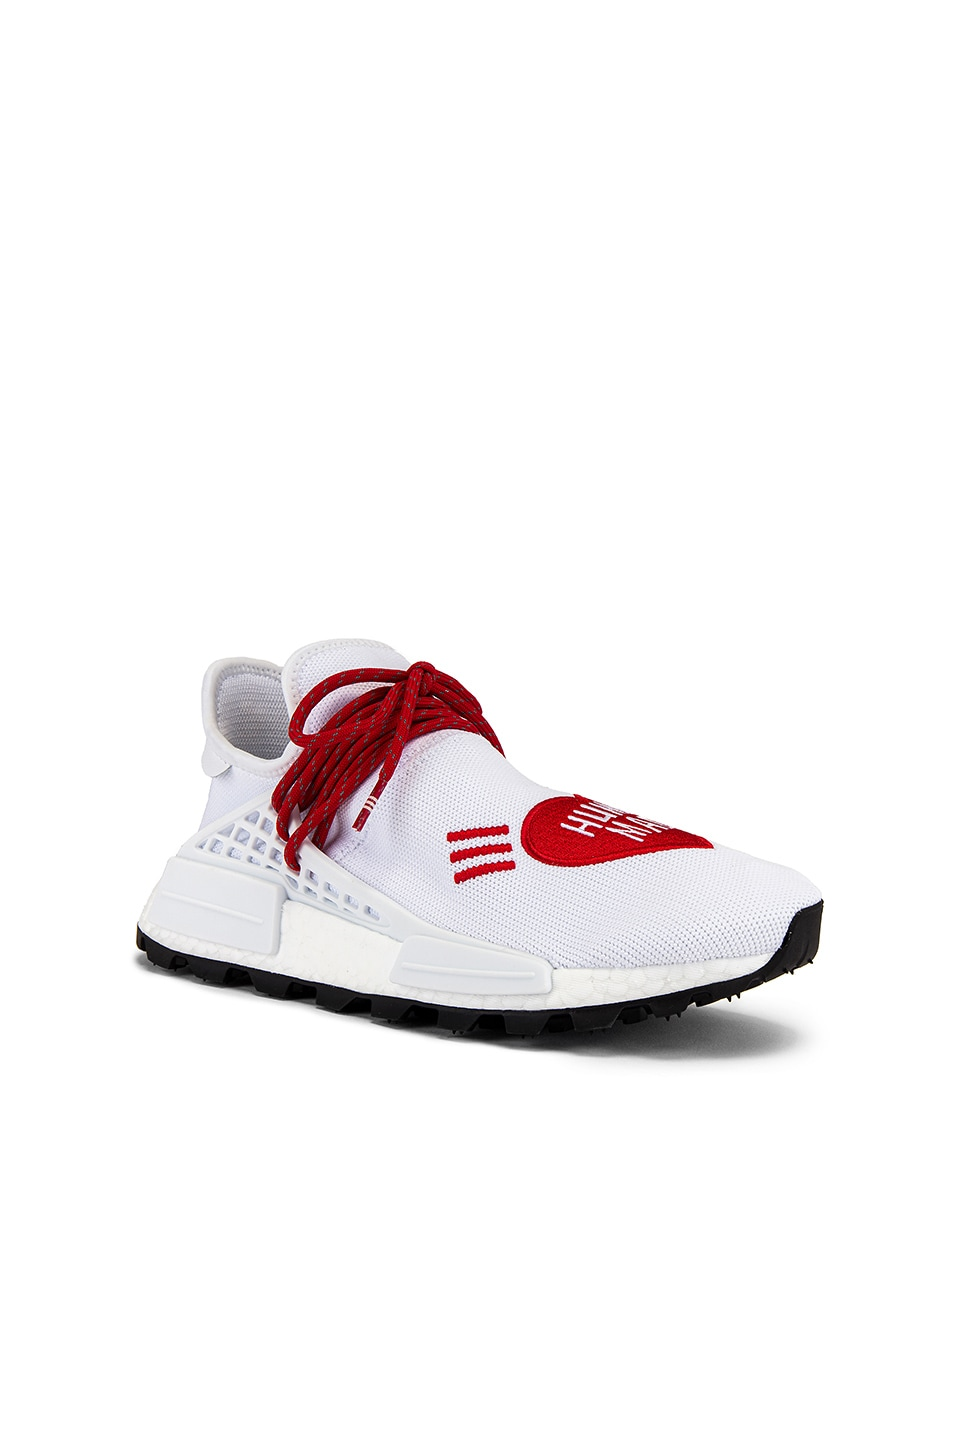 adidas x Pharrell Williams Hu NMD Human Made in White & Scarlet & Core Black